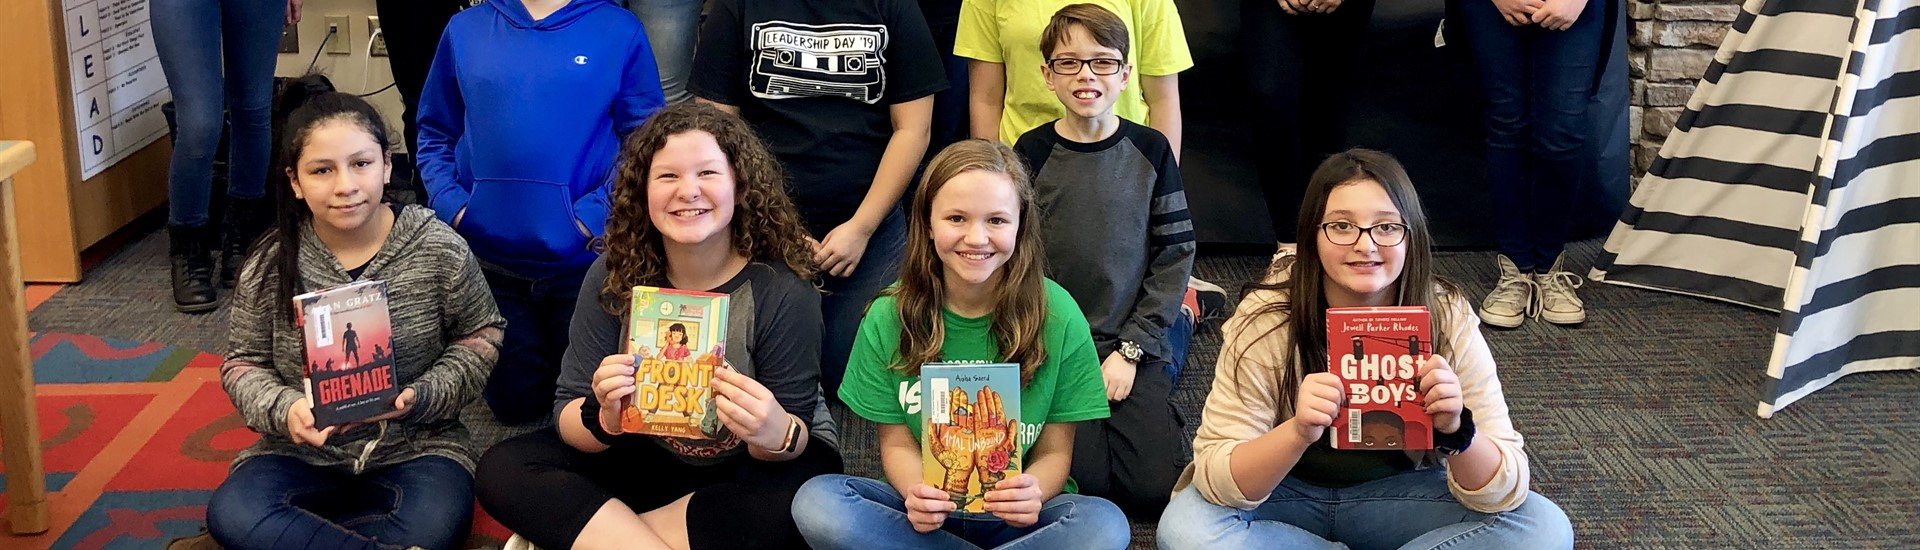 6th Grade Book Club